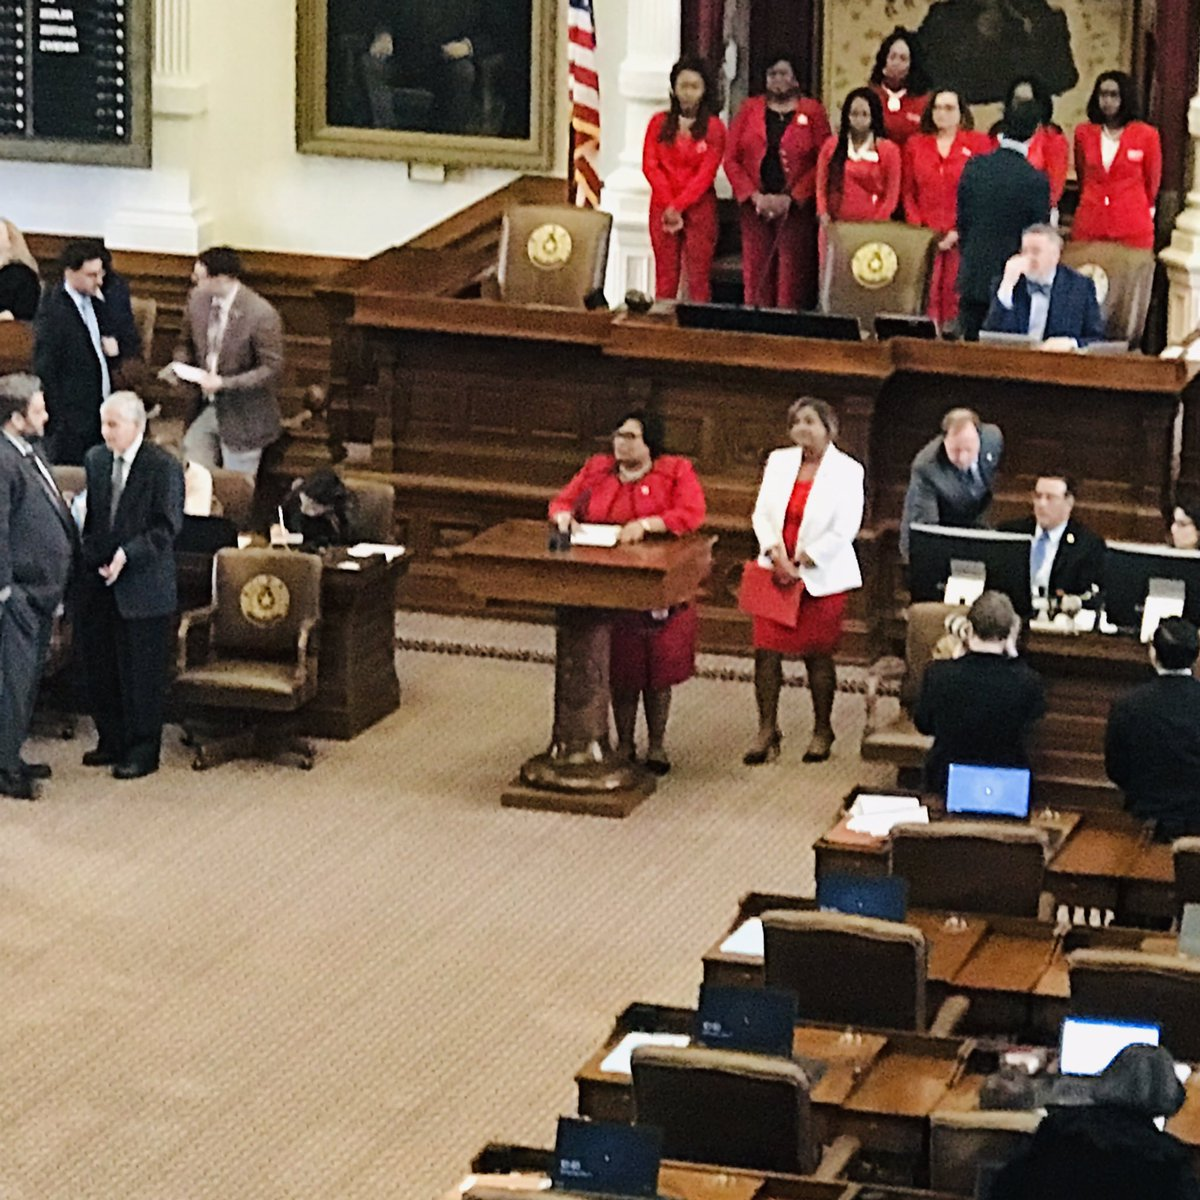 The #Deltas Are Coming .... The #Deltas are Coming.... It's #Red&amp;WhiteDay at the #TexasStateCapitol @RepToniRoseTX #DeltasStateCapitolDay<br>http://pic.twitter.com/dfFA6u6dqy